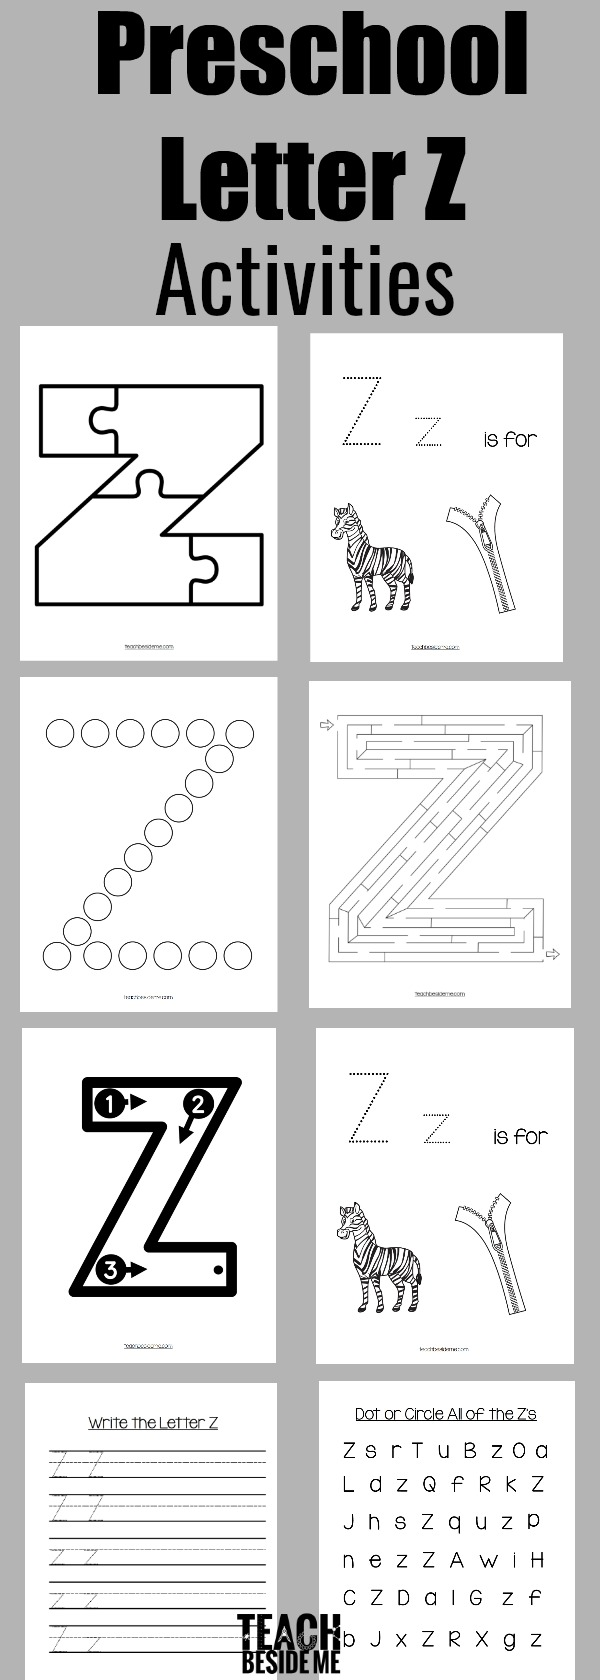 preschool letter z activities and worksheets